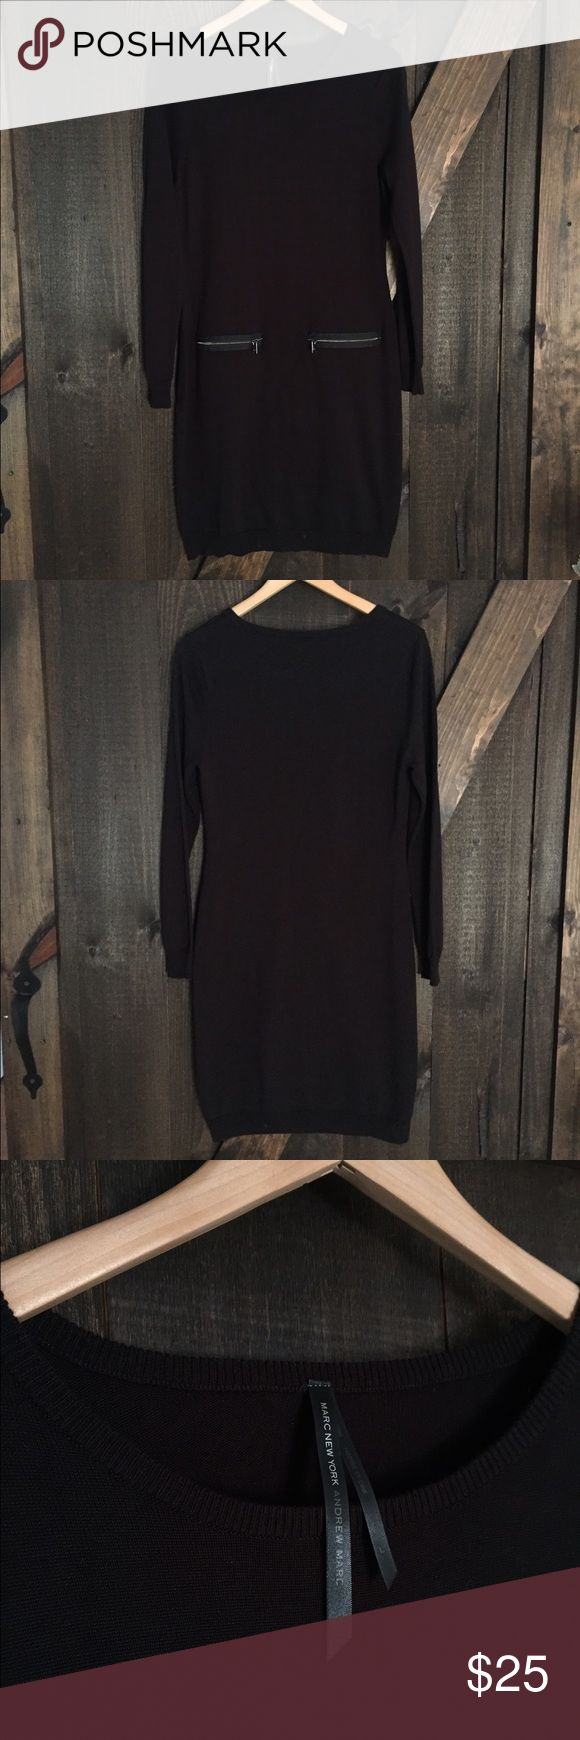 """Marc New York long sleeve sweater dress Marc New York long sleeve sweater dress in black. Exposed zip pockets at hip.  Crew neck. Ribbed trim. Pullover style. Approx 38.5"""" length. Size Large. Worn literally once to an event. Perfect condition. Andrew Marc Dresses Long Sleeve"""